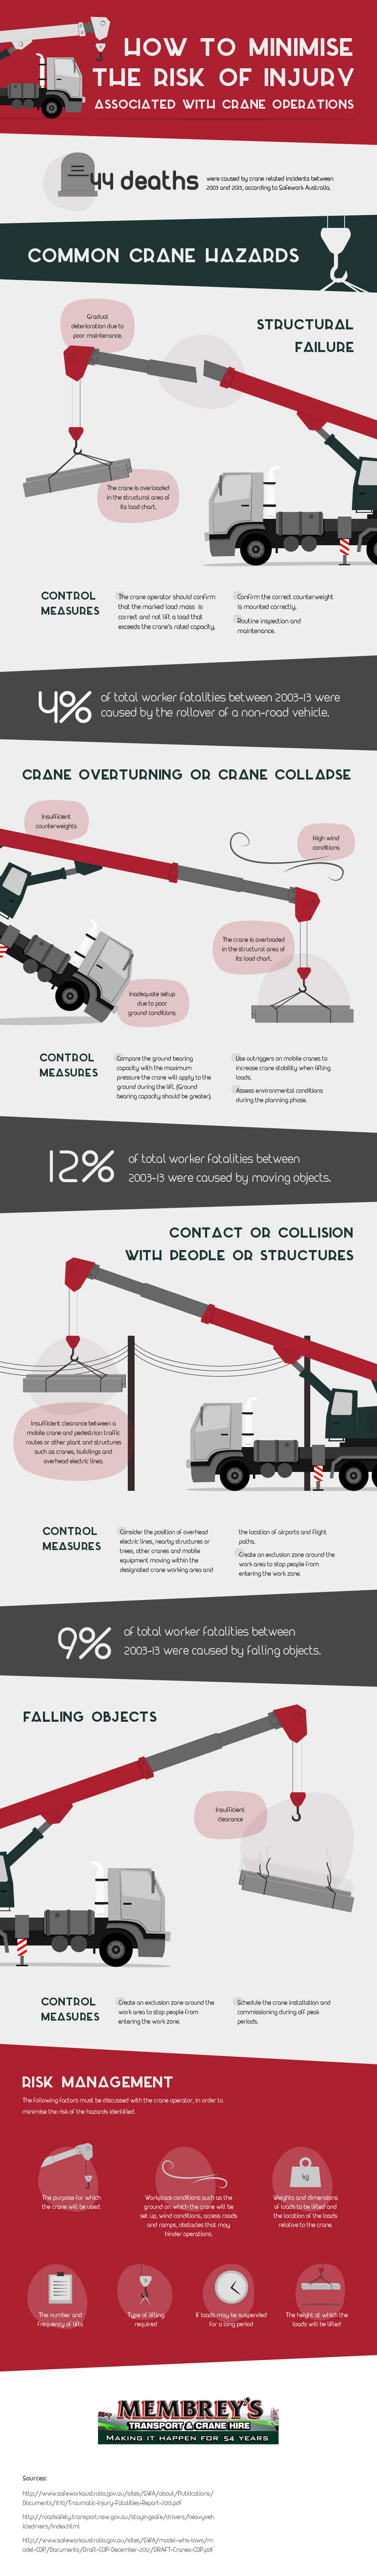 The-Ultimate-Crane-Safety-Guide